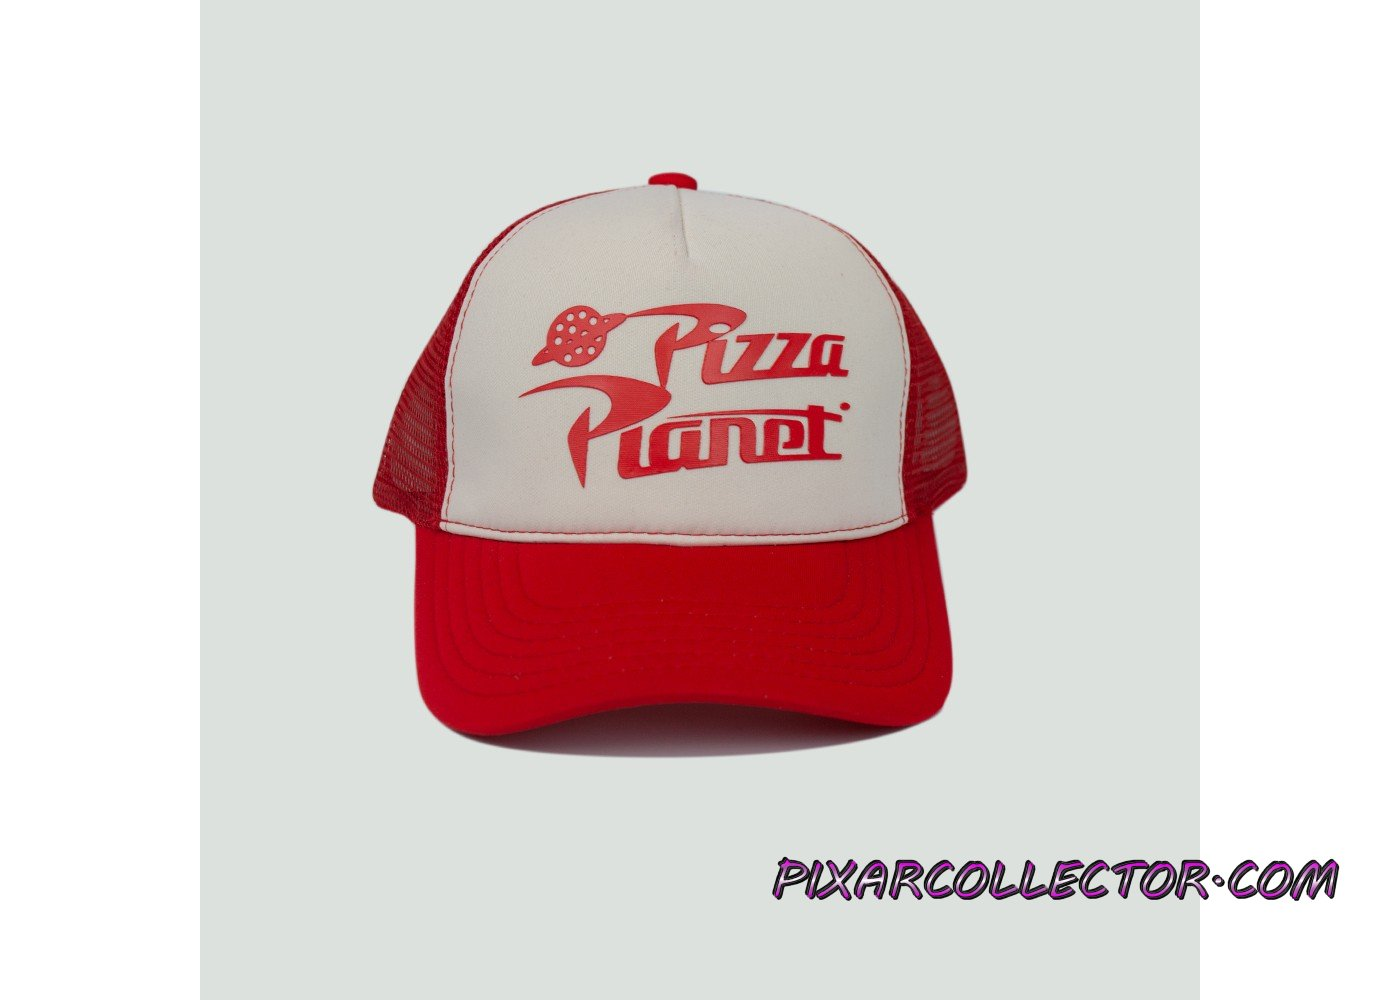 Pizza Planet Trucker Hat Target Toy Story 4 a9ce28af9baf